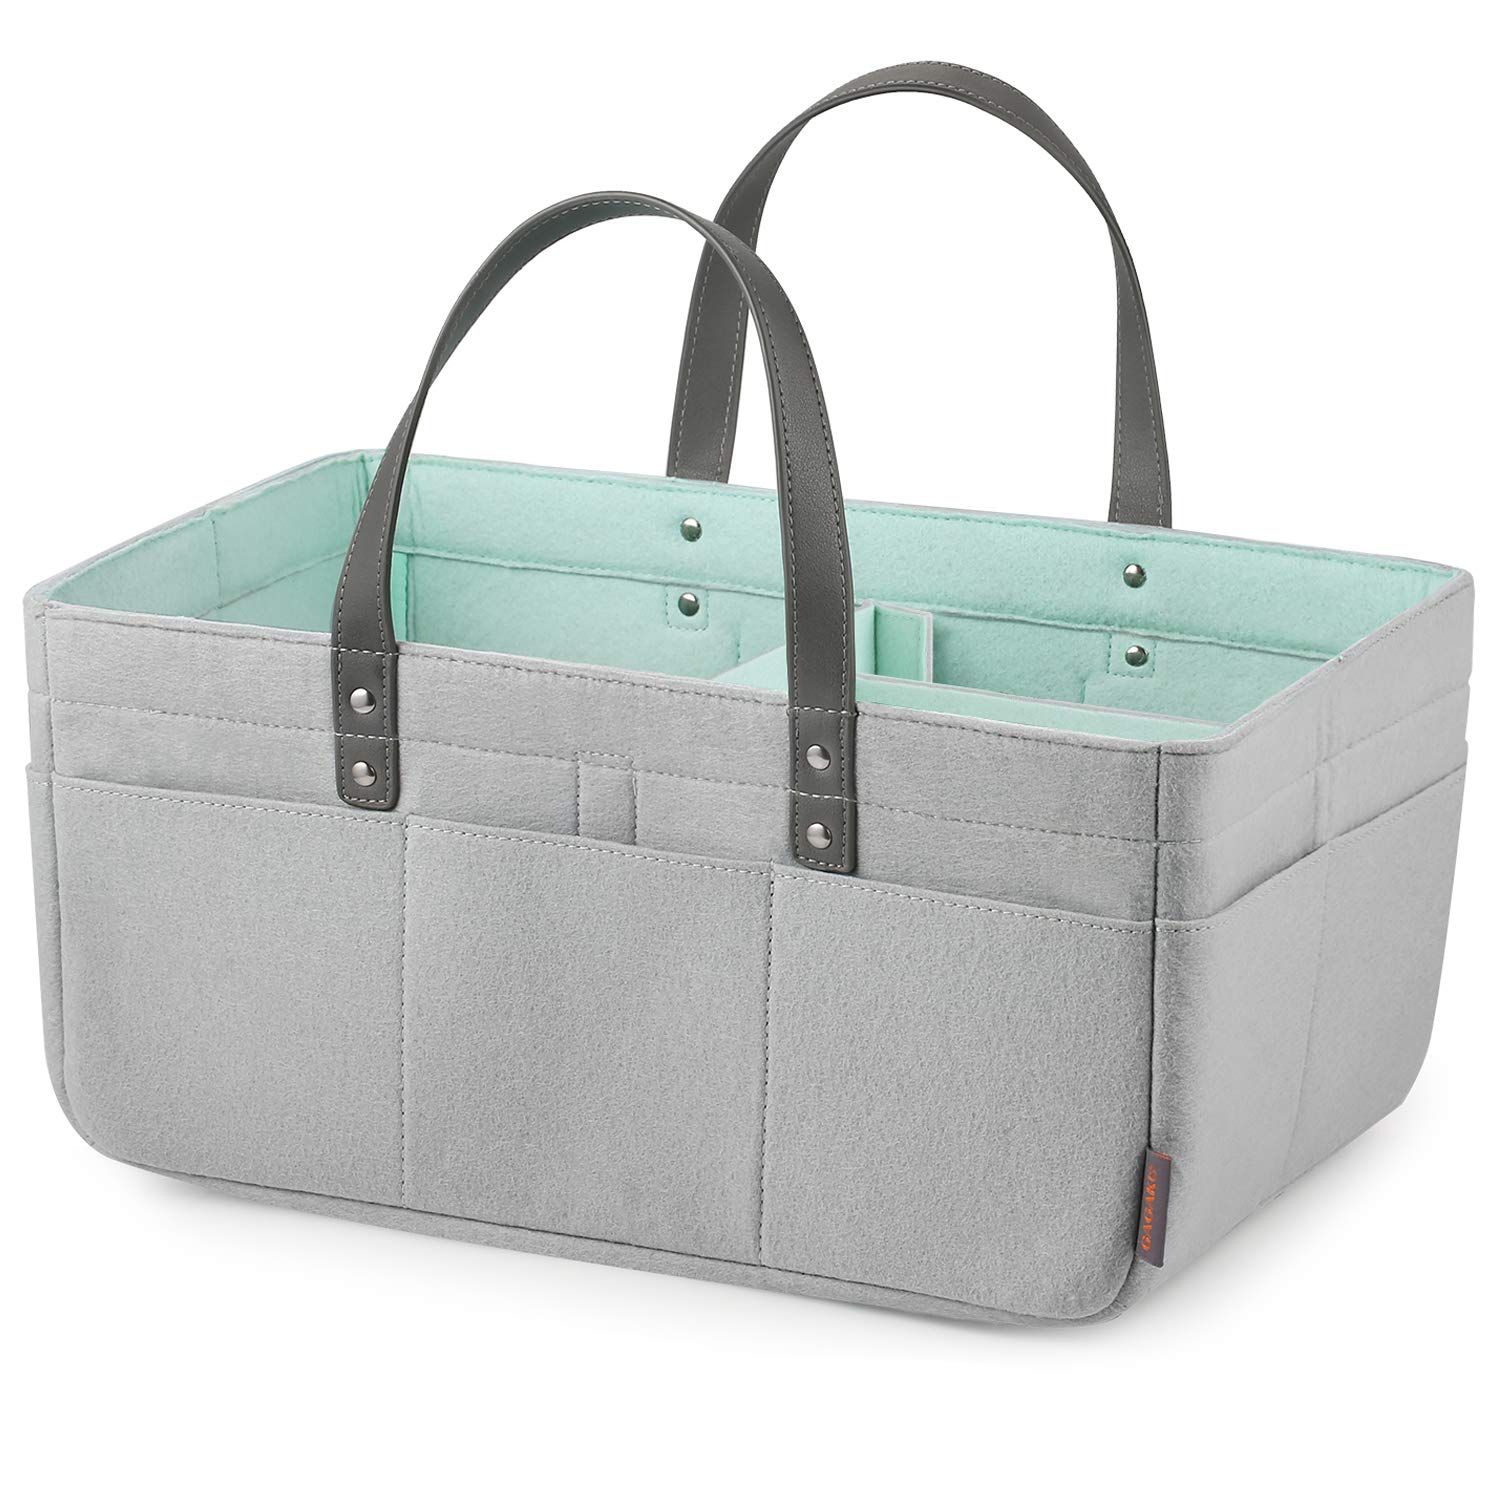 444fab2a9d6d GAGAKU Extra Large Baby Diaper Caddy Organizer Portable Nappy Storage  Basket for Home Car or...